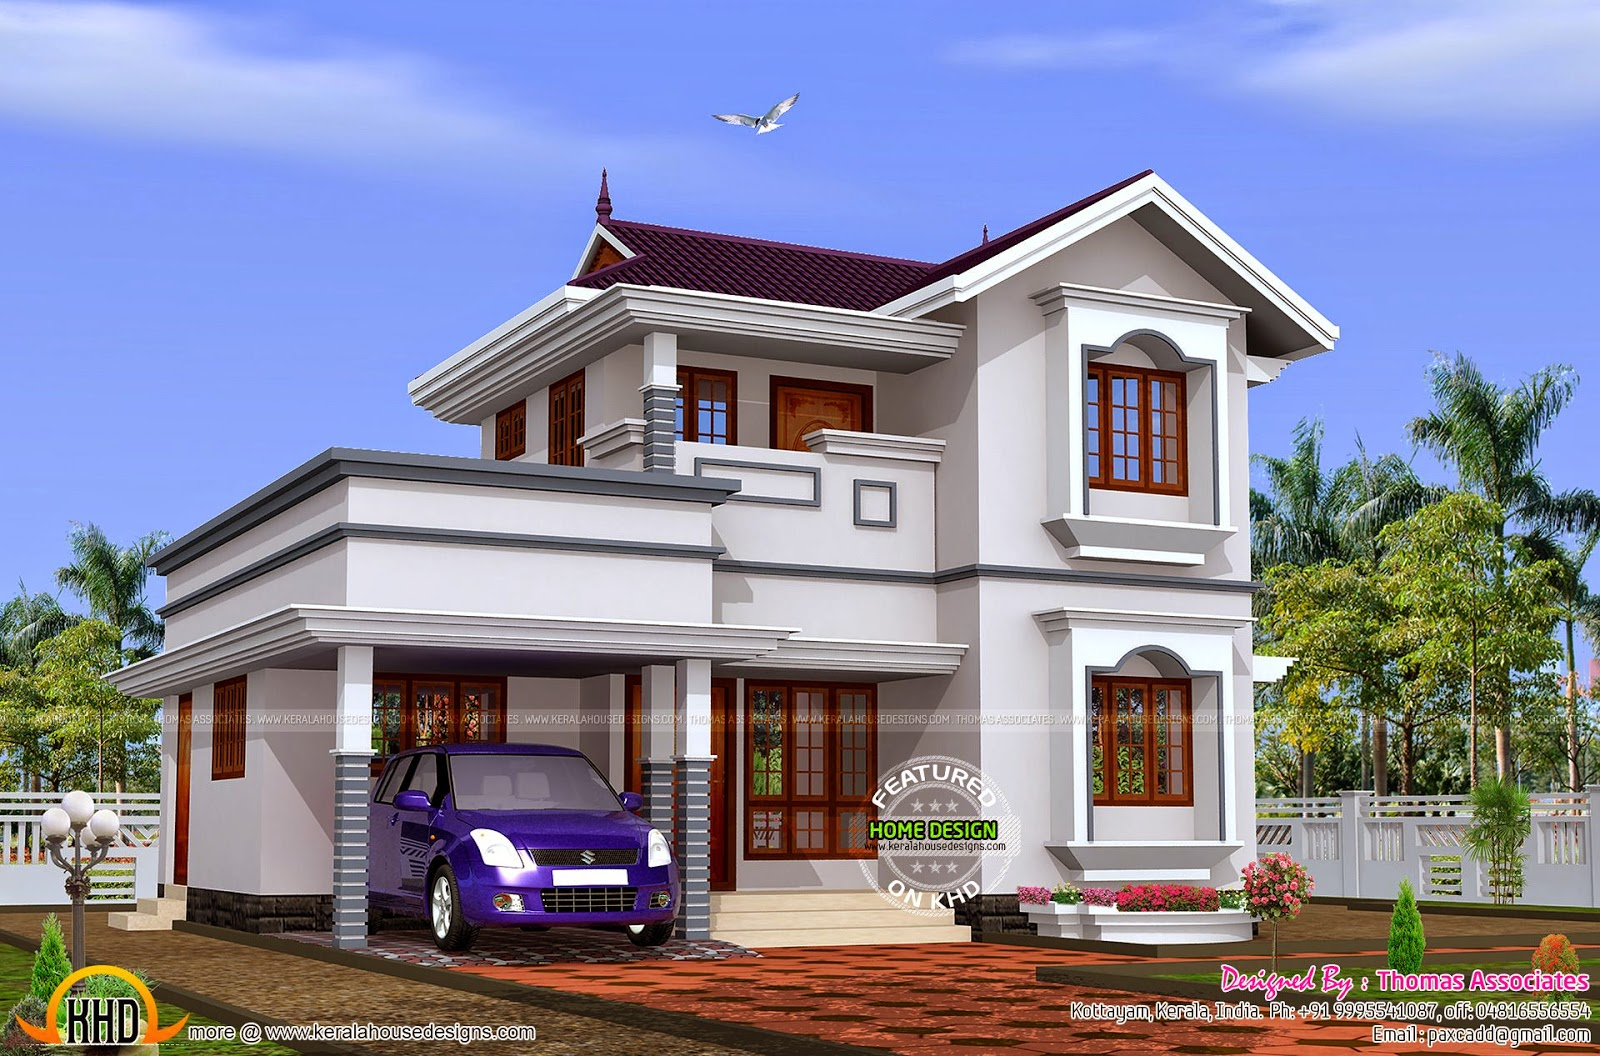 Budget double storied house with estimate kerala home design and floor plans Home design and estimate